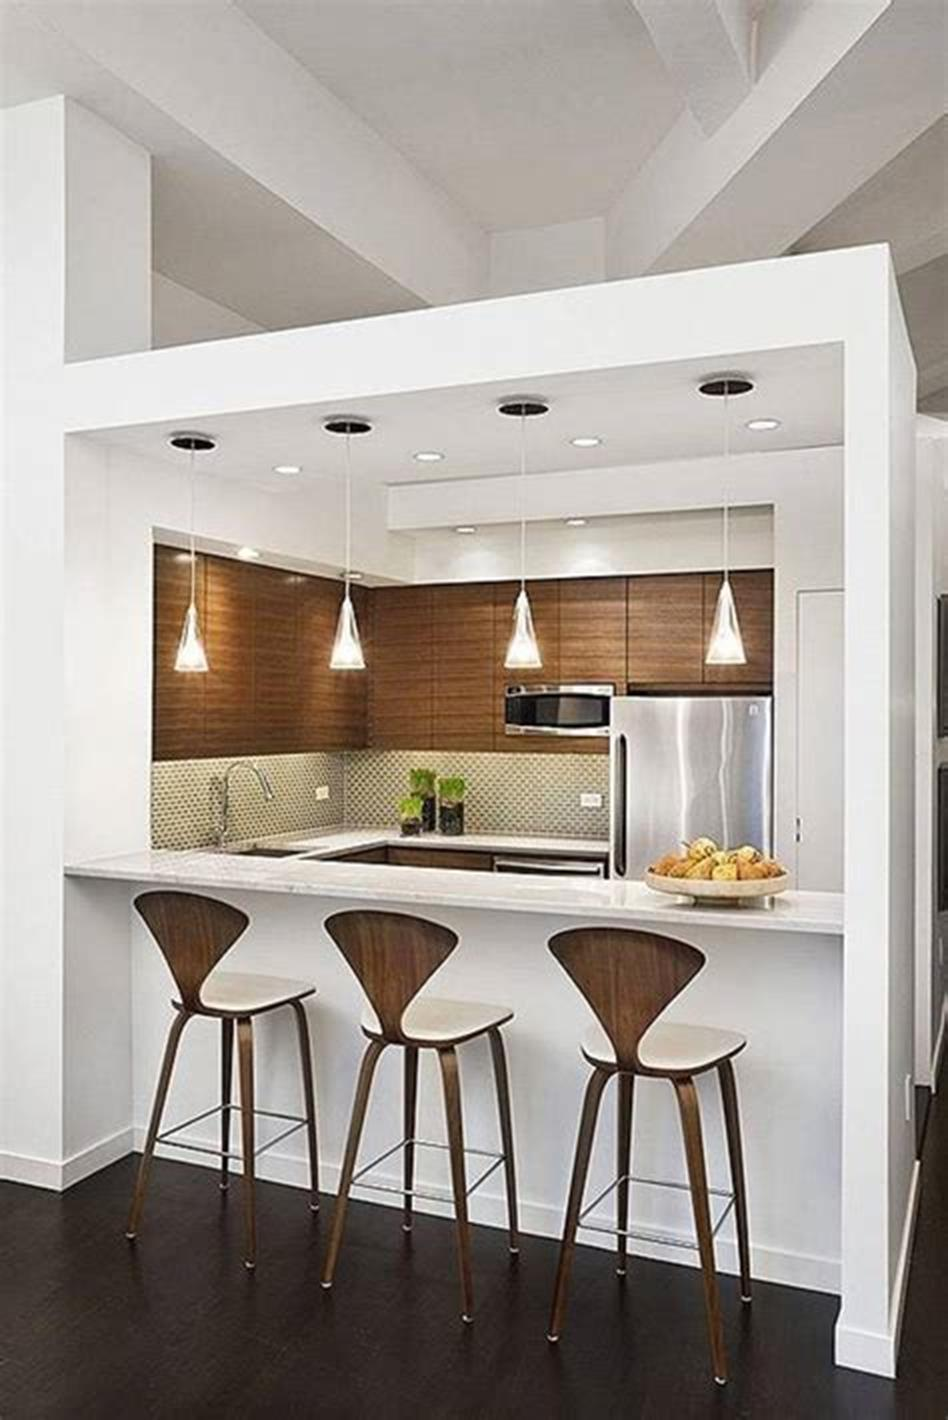 43 Amazing Kitchen Remodeling Ideas for Small Kitchens 2019 45